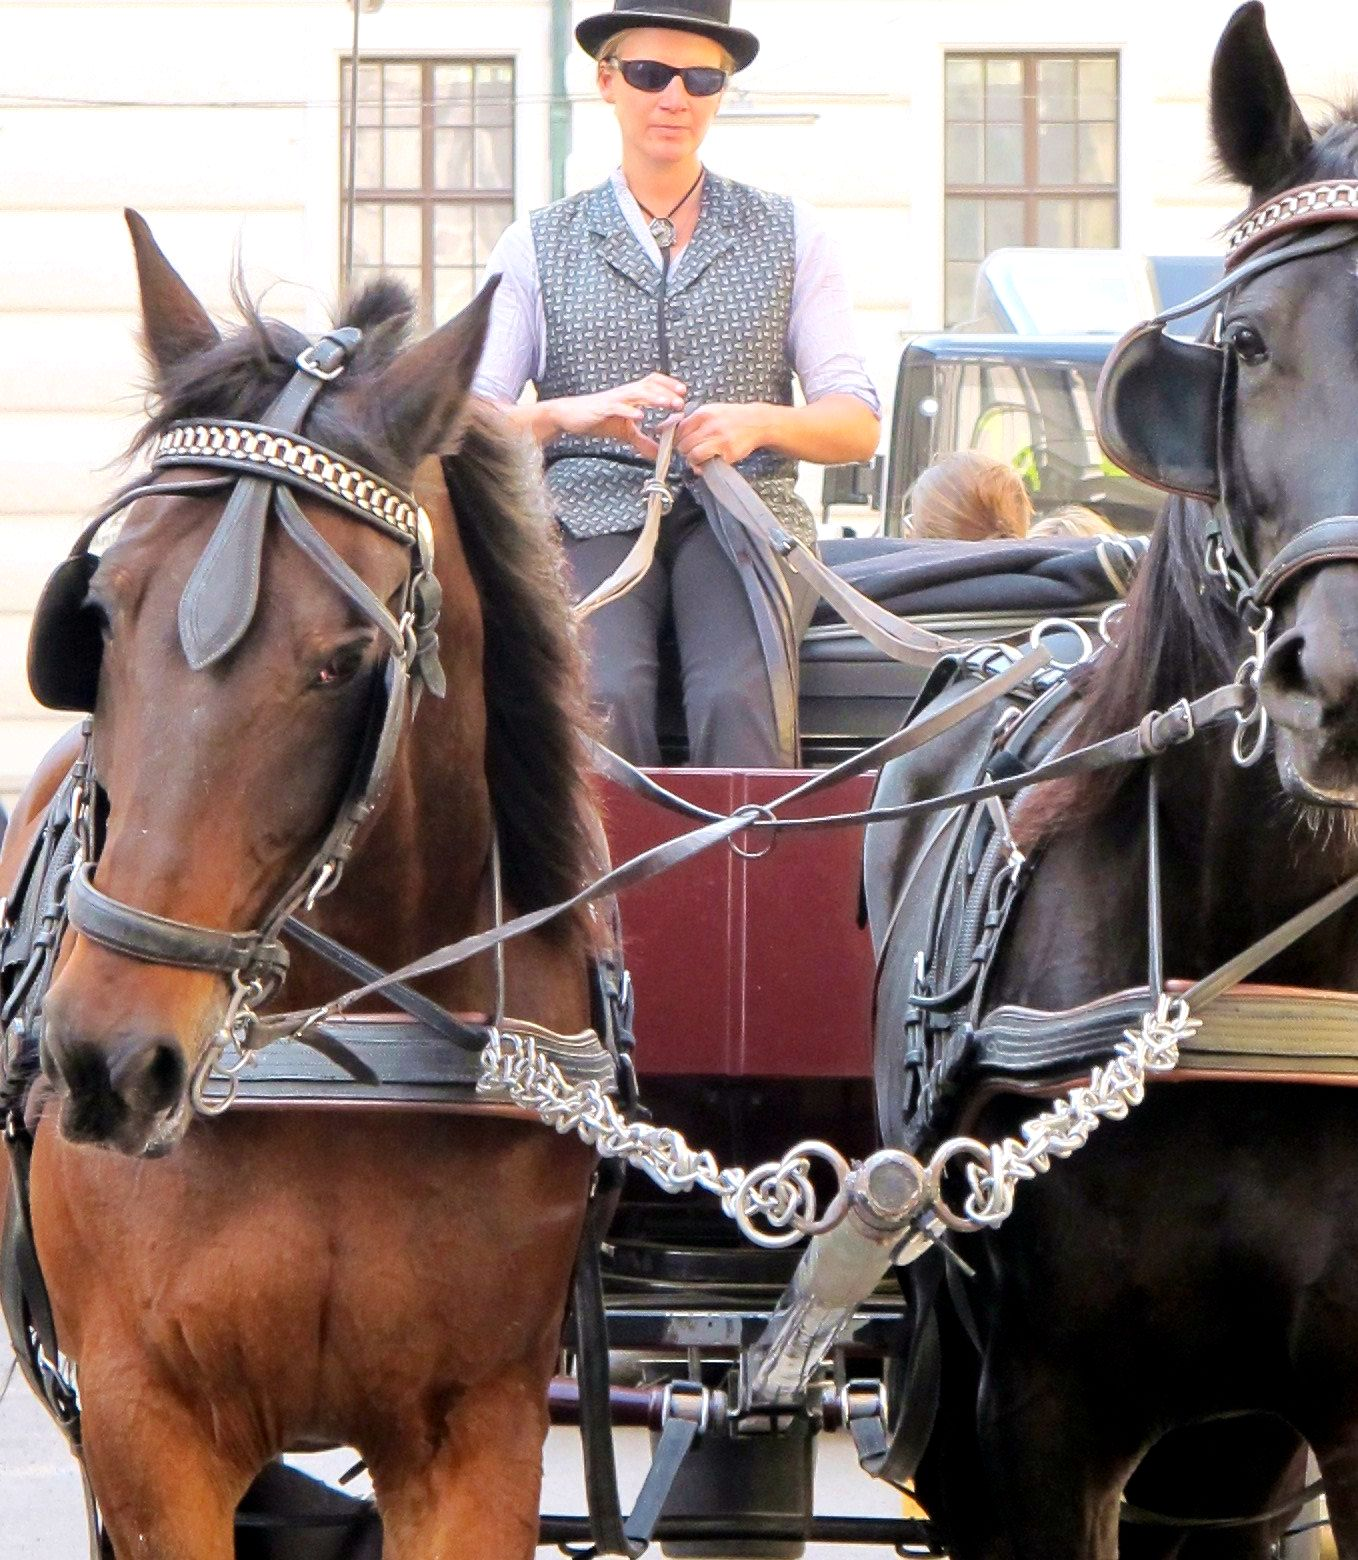 * You may have heard of the Fiaker which is found as a tourist attraction and a means of transport in larger Austrian cities. Classically, instead of on one, it works on two horse-powers. The coachman - or woman - is called Fiaker as well.